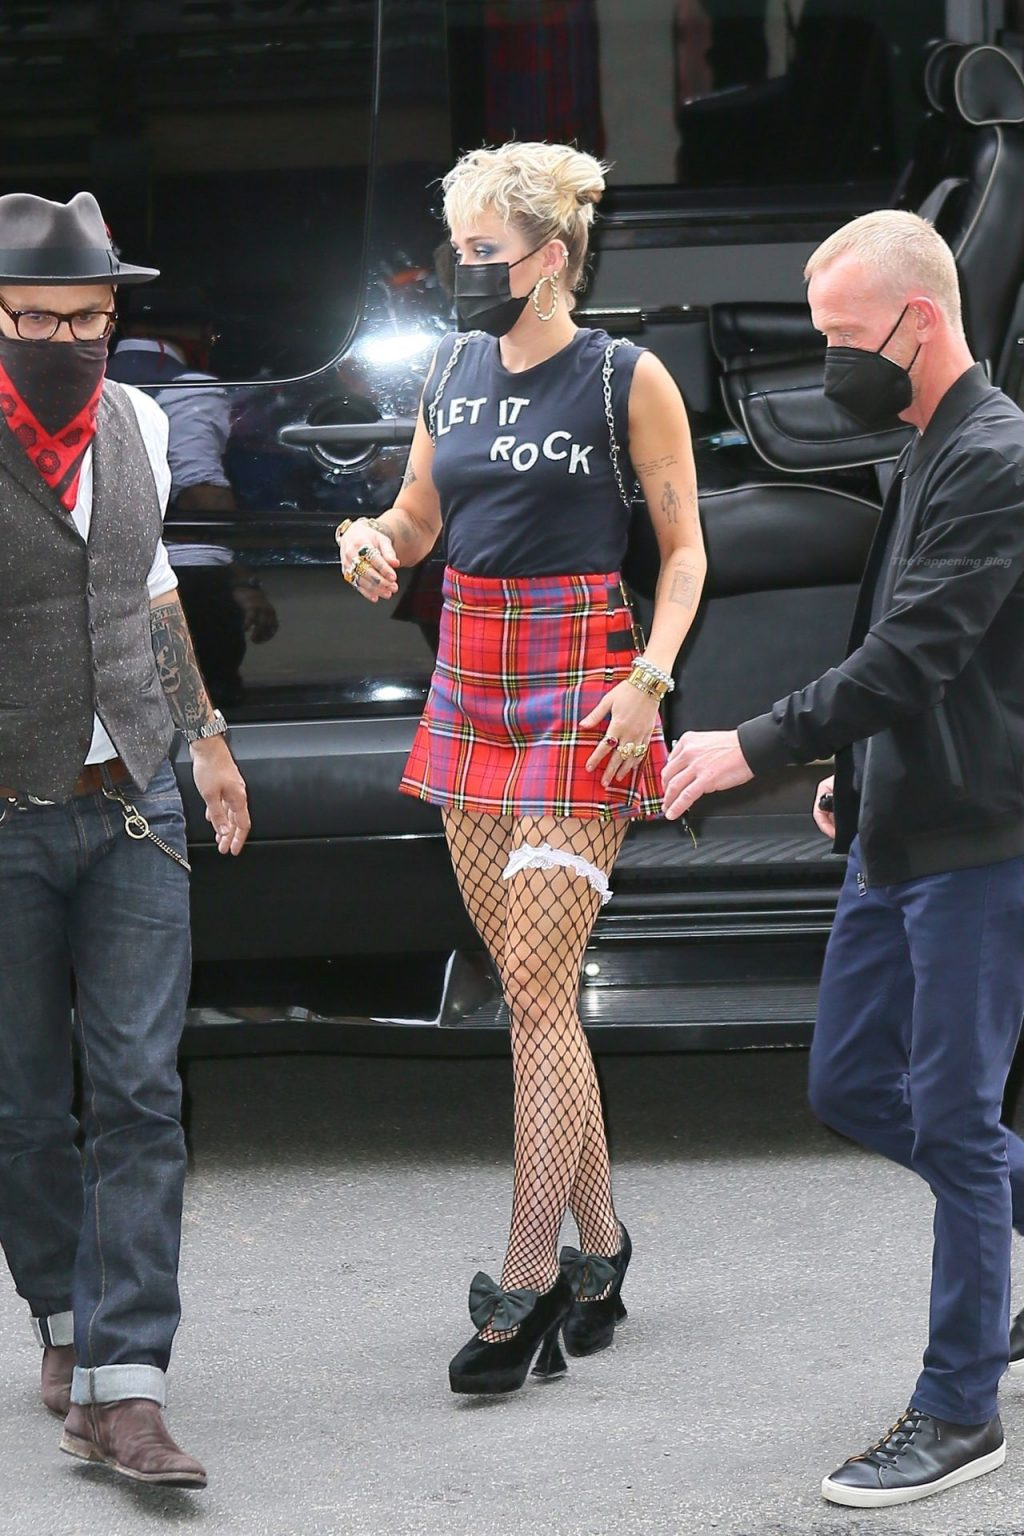 Miley Cyrus Grabs Attention in a Mini Skirt and Fishnets in NYC (22 Photos)